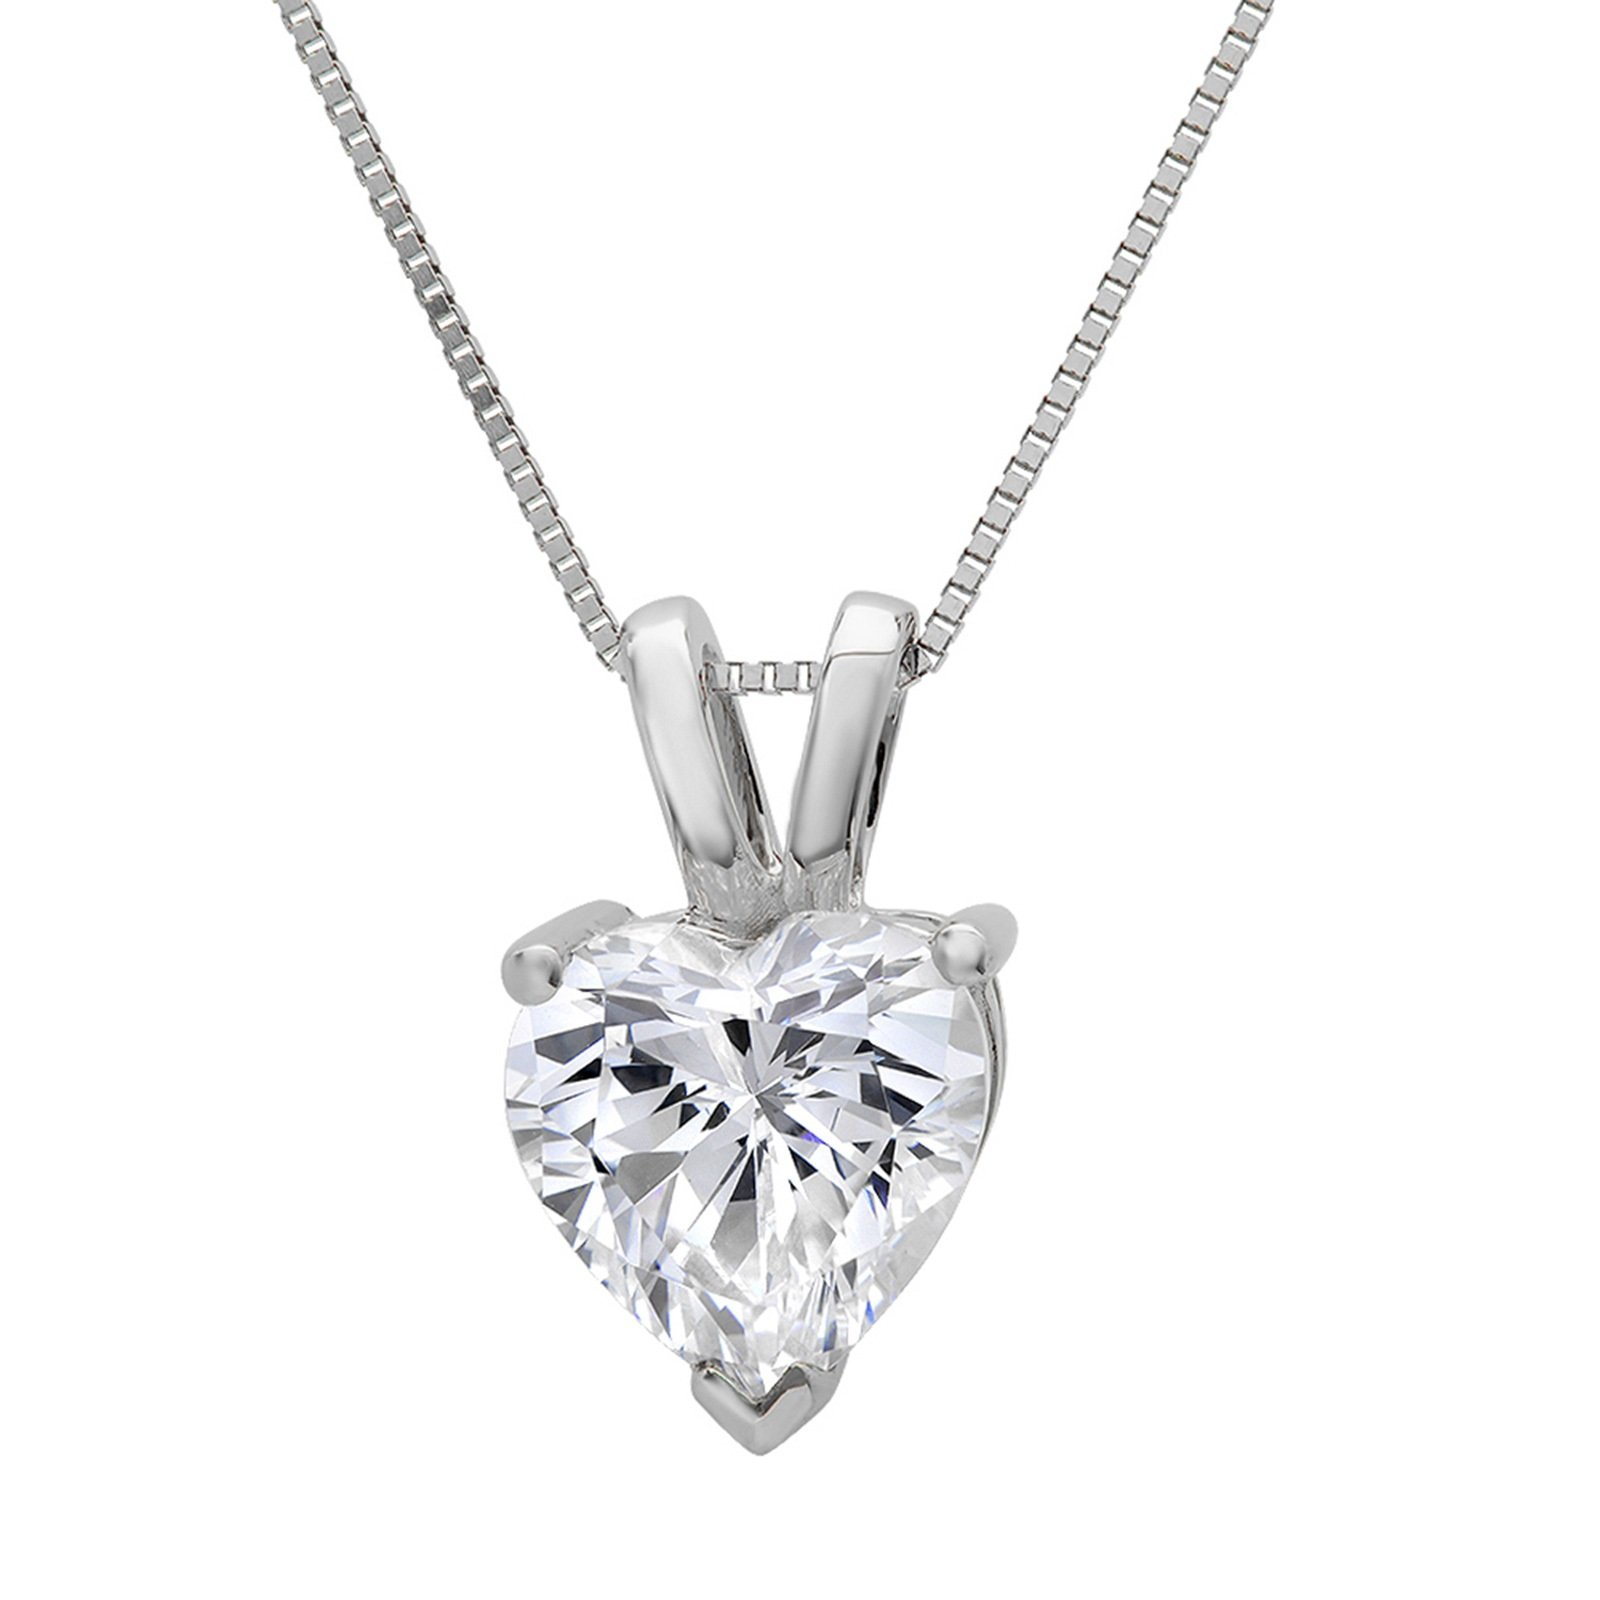 0.55 ct Brilliant Heart Cut Highest Quality Created White Sapphire Ideal VVS1 D Solitaire Pendant Necklace With 16'' Gold Chain box Solid 14k White Gold, Clara Pucci